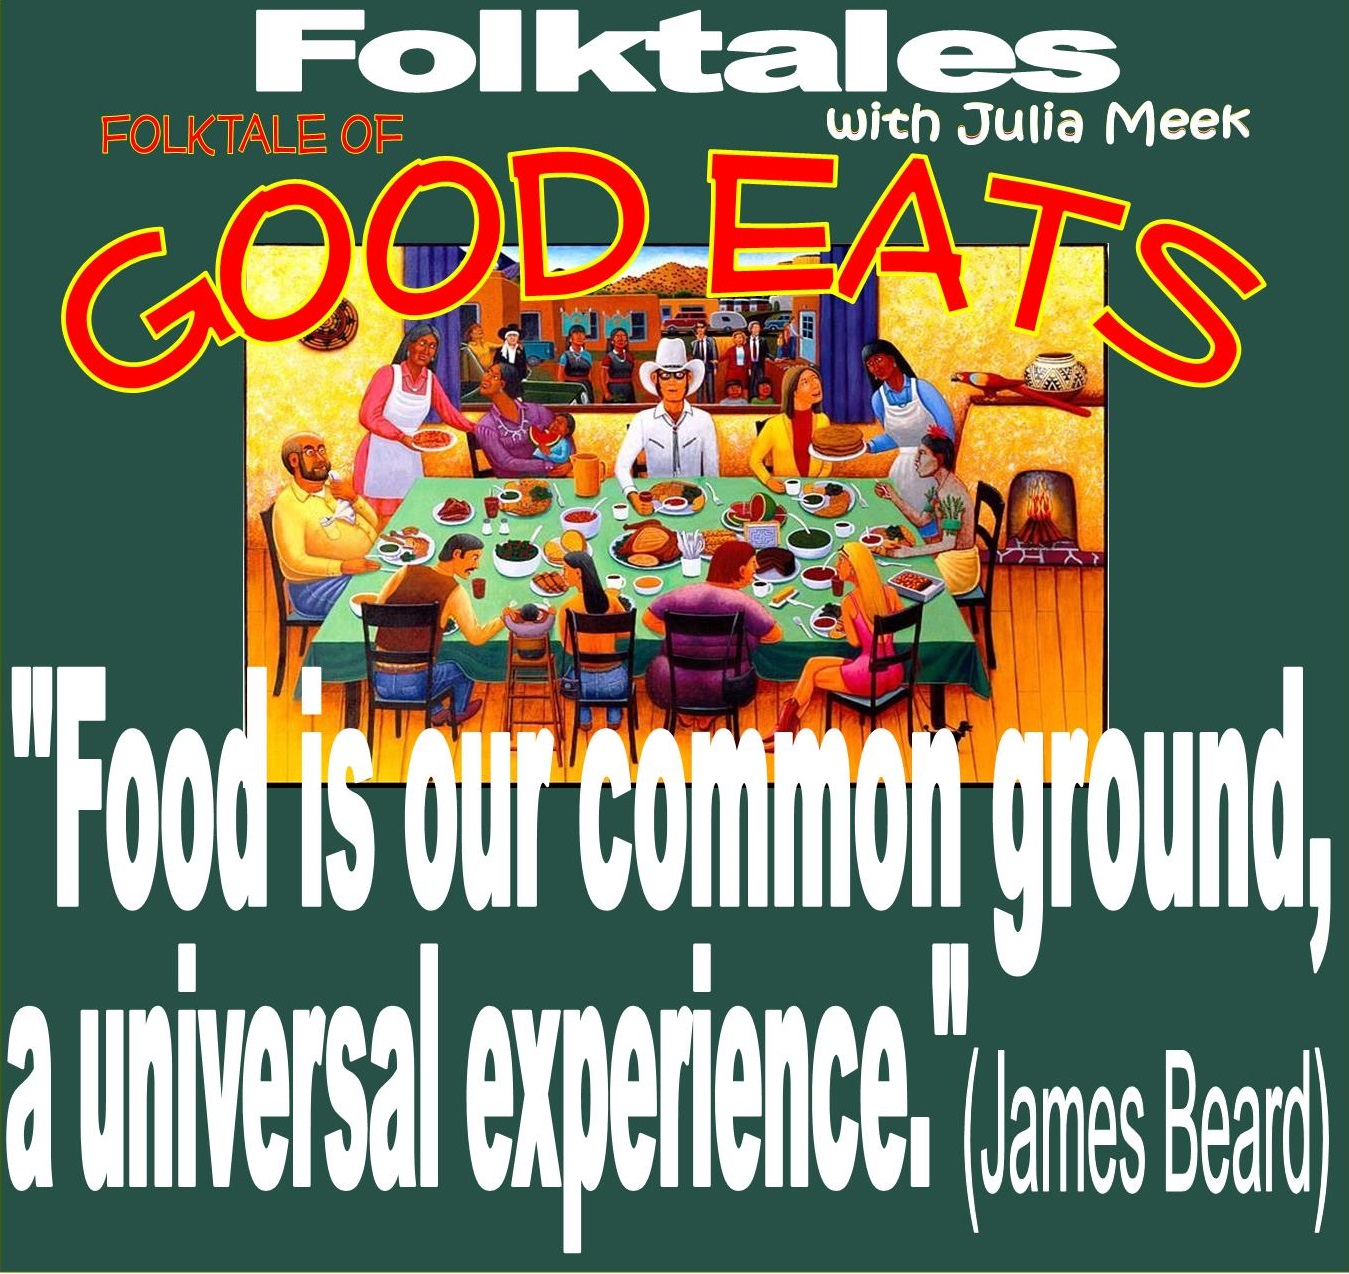 Caption: WBOI's Folktale of Good Eats, Credit: Julia Meek